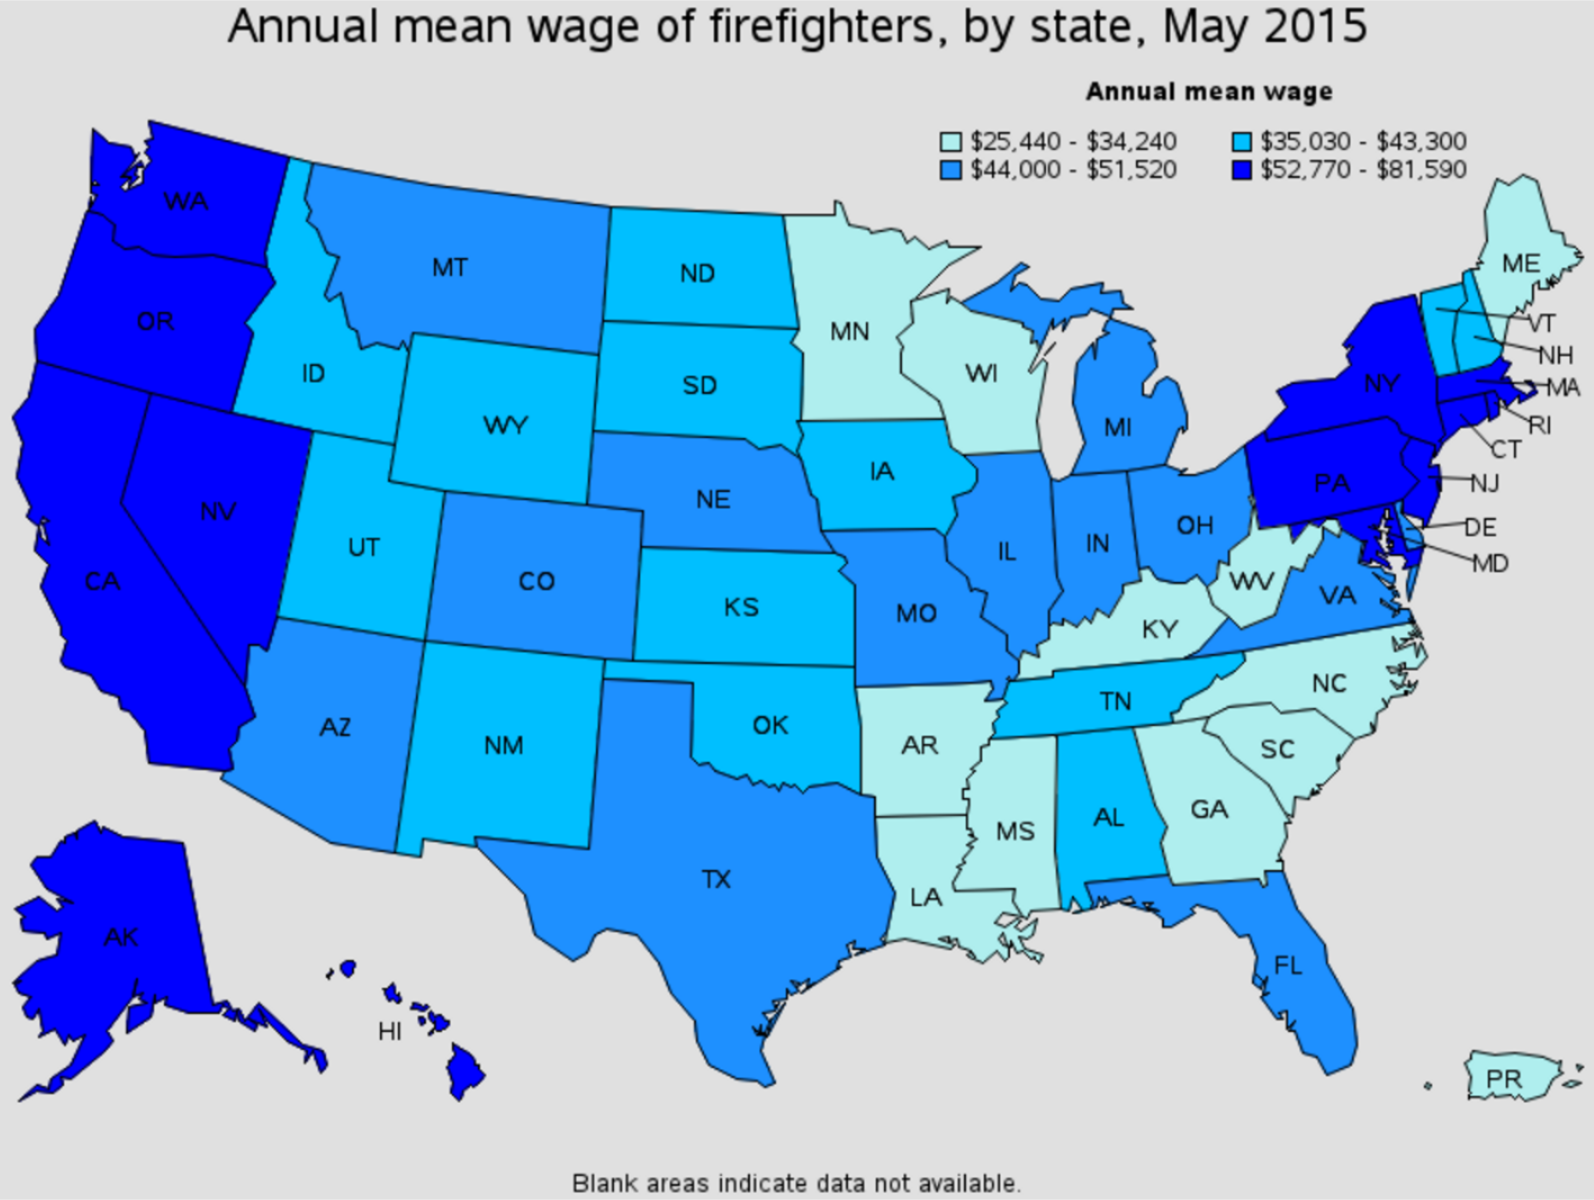 firefighter average salary by state Holden Massachusetts